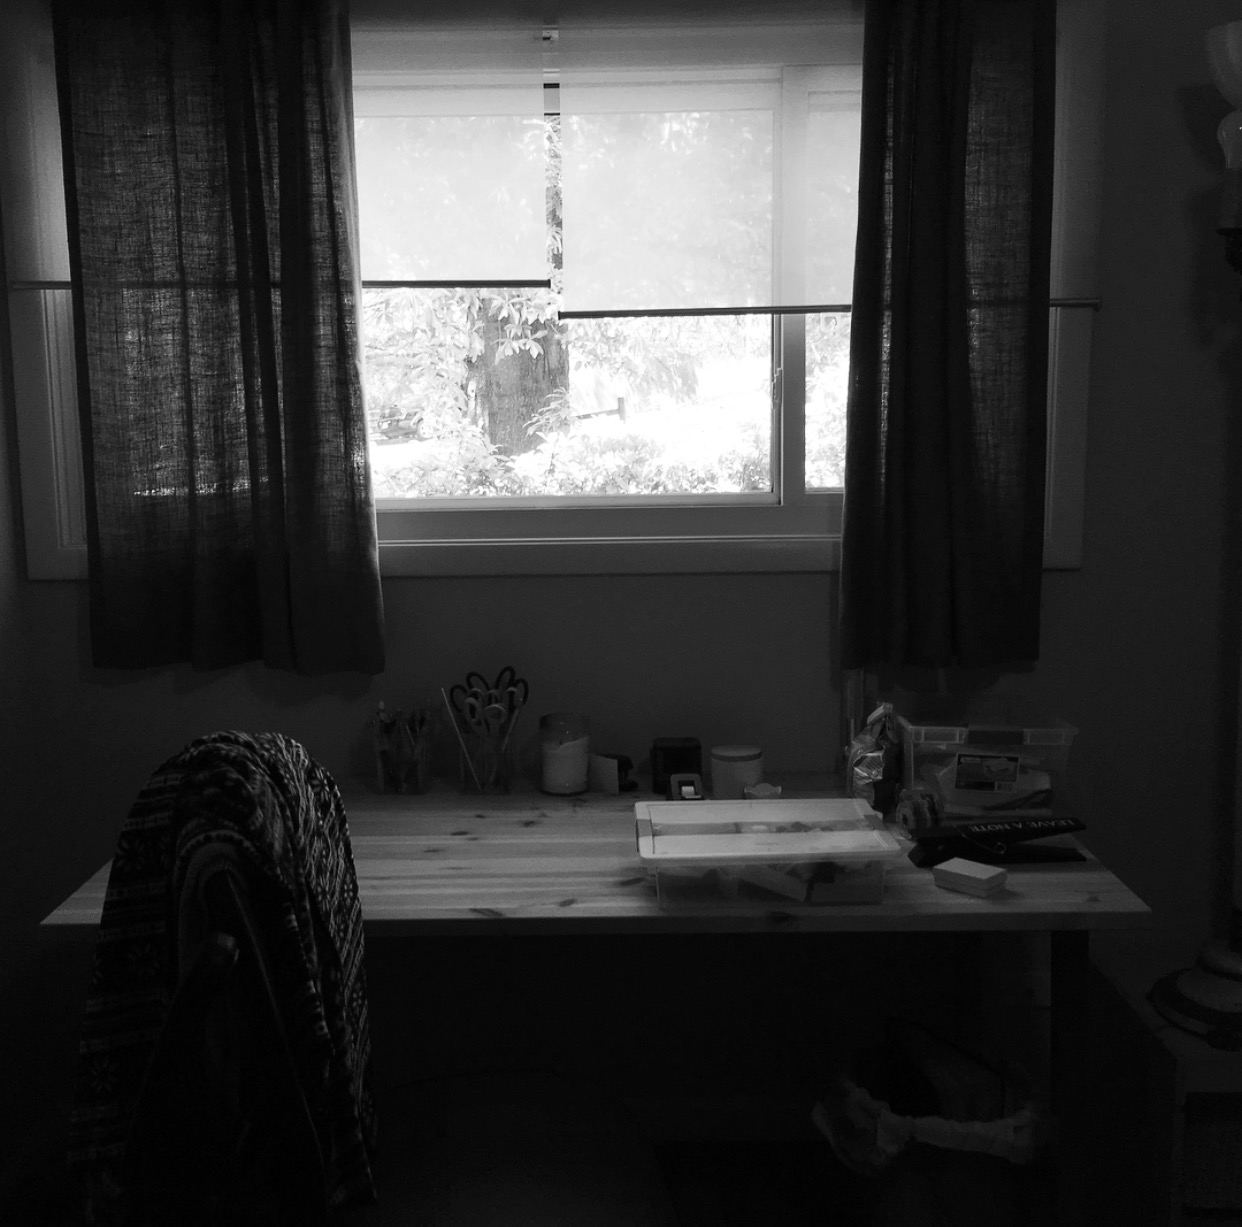 upstairs bedroom2 window bw